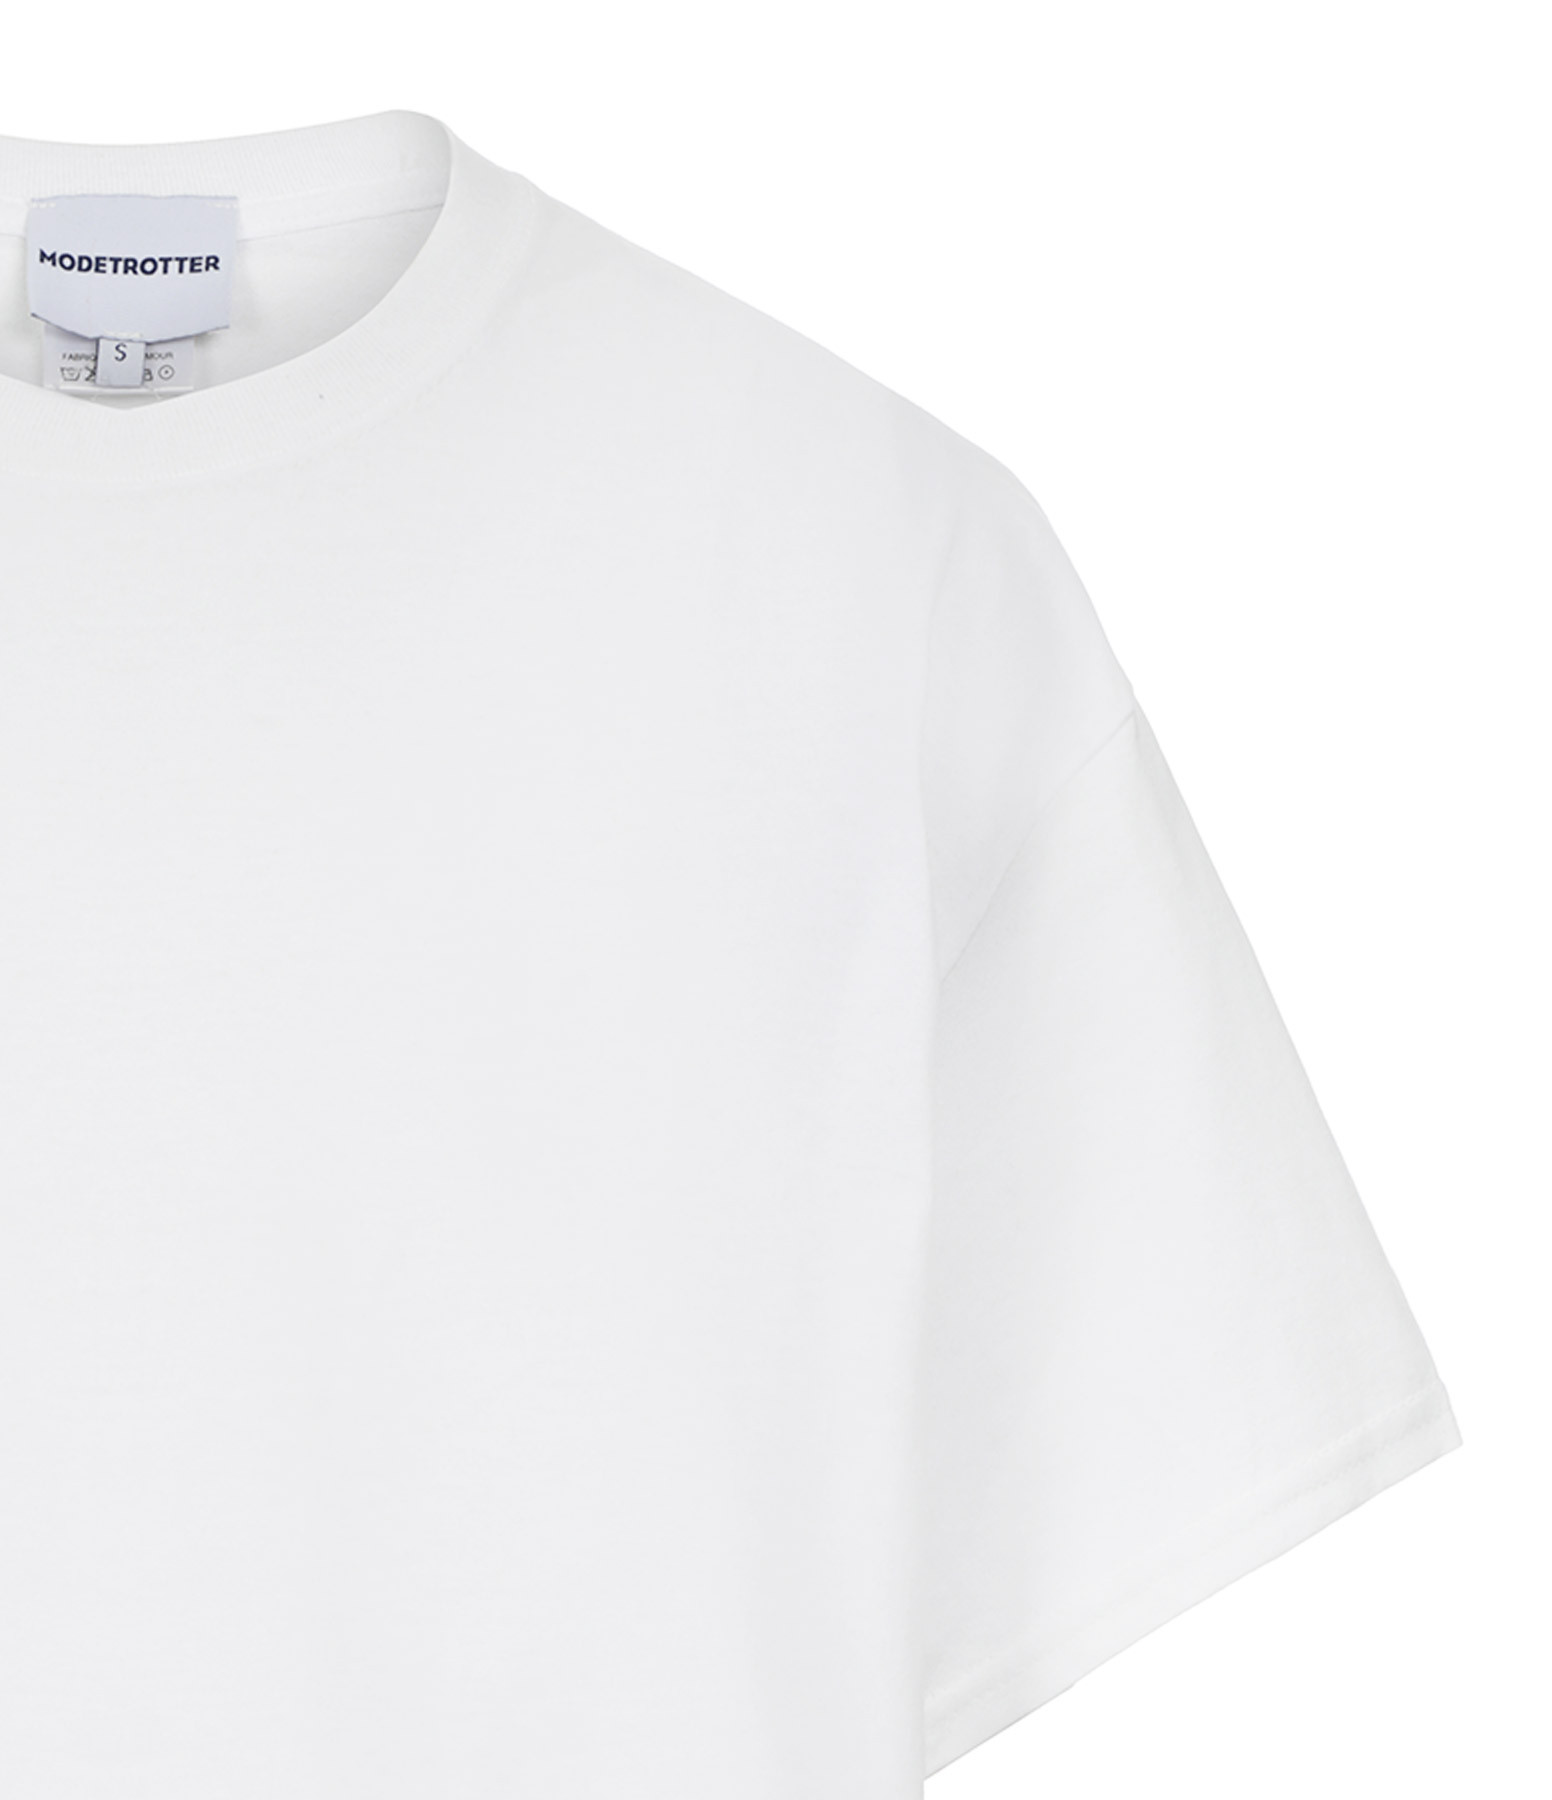 MODETROTTER - Tee-shirt Chris Coton Blanc